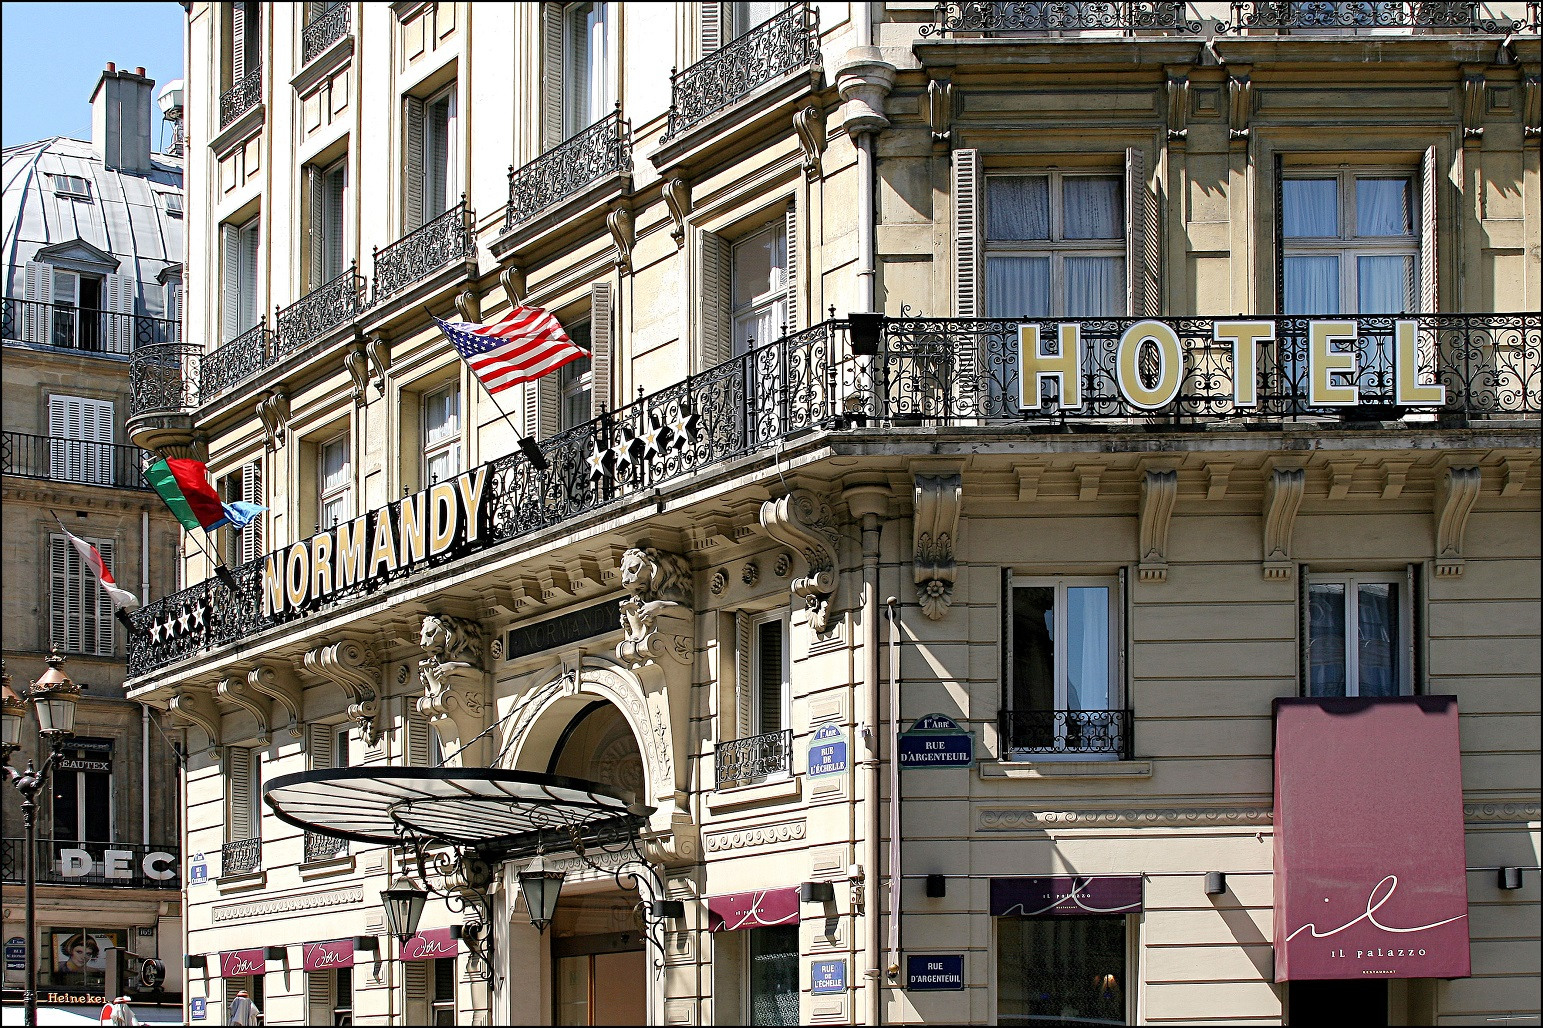 66/Facade/normandy-hotel-facade-paris-centre-quartier-luxe.JPG